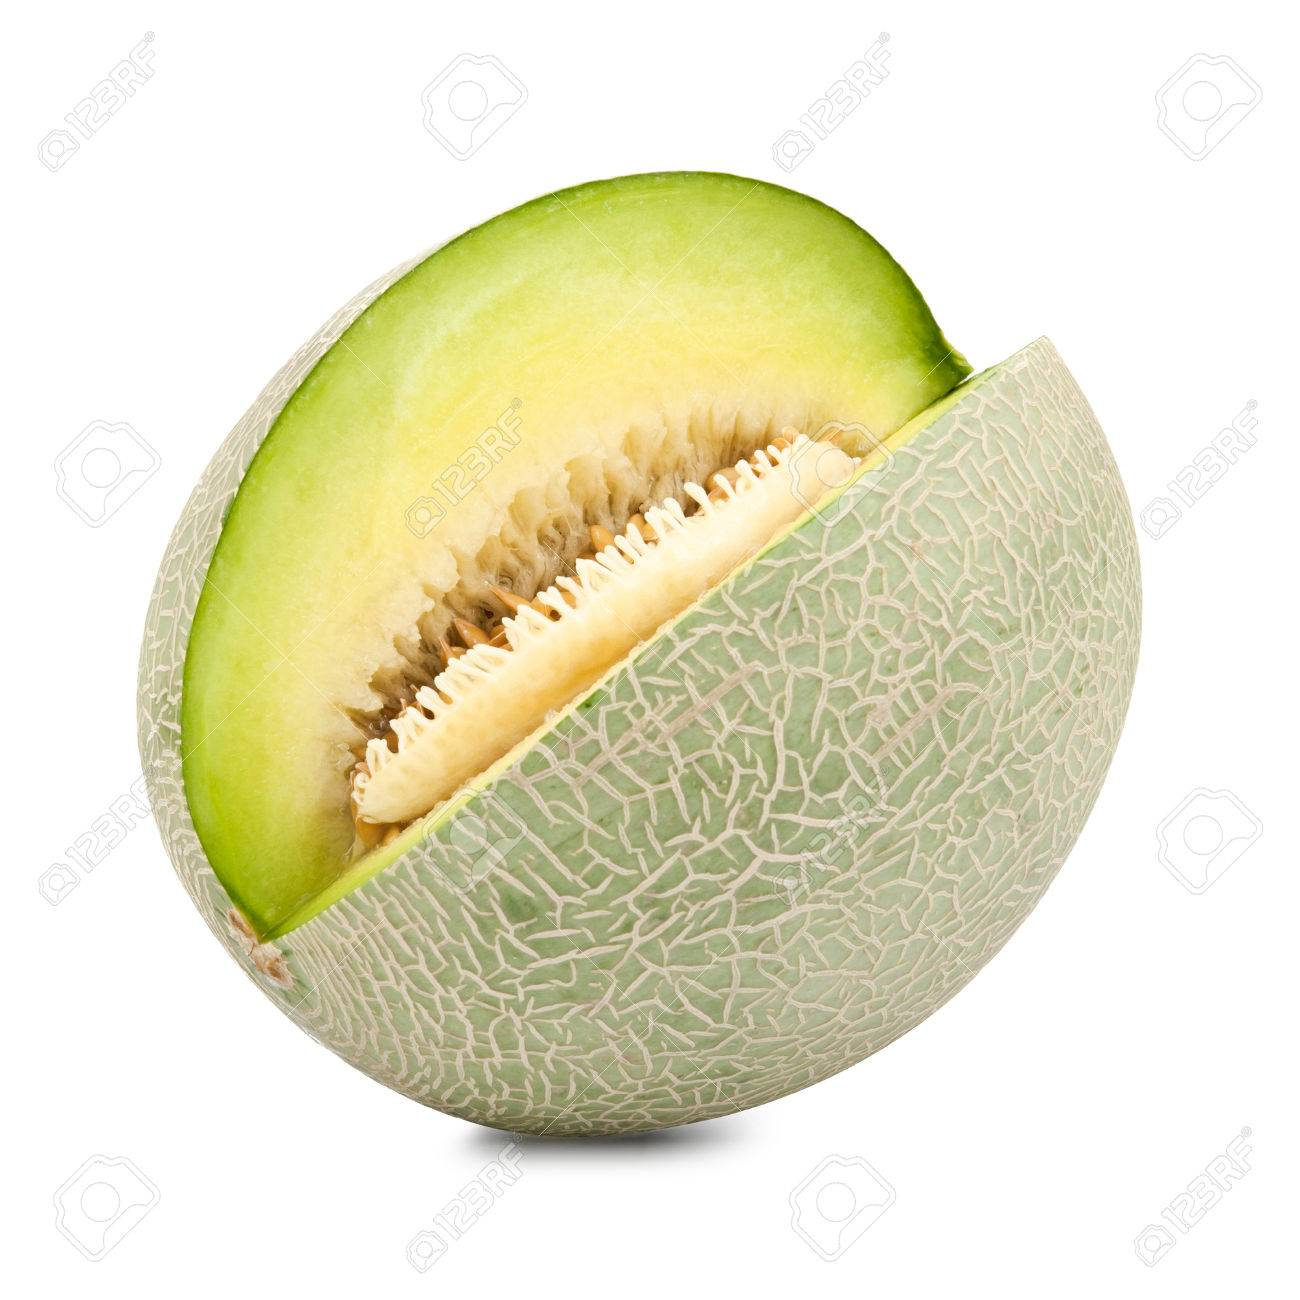 Green Cantaloupe Melon Isolated On White Stock Photo Picture And Royalty Free Image Image 57723721 Book a guided tour with us today! green cantaloupe melon isolated on white